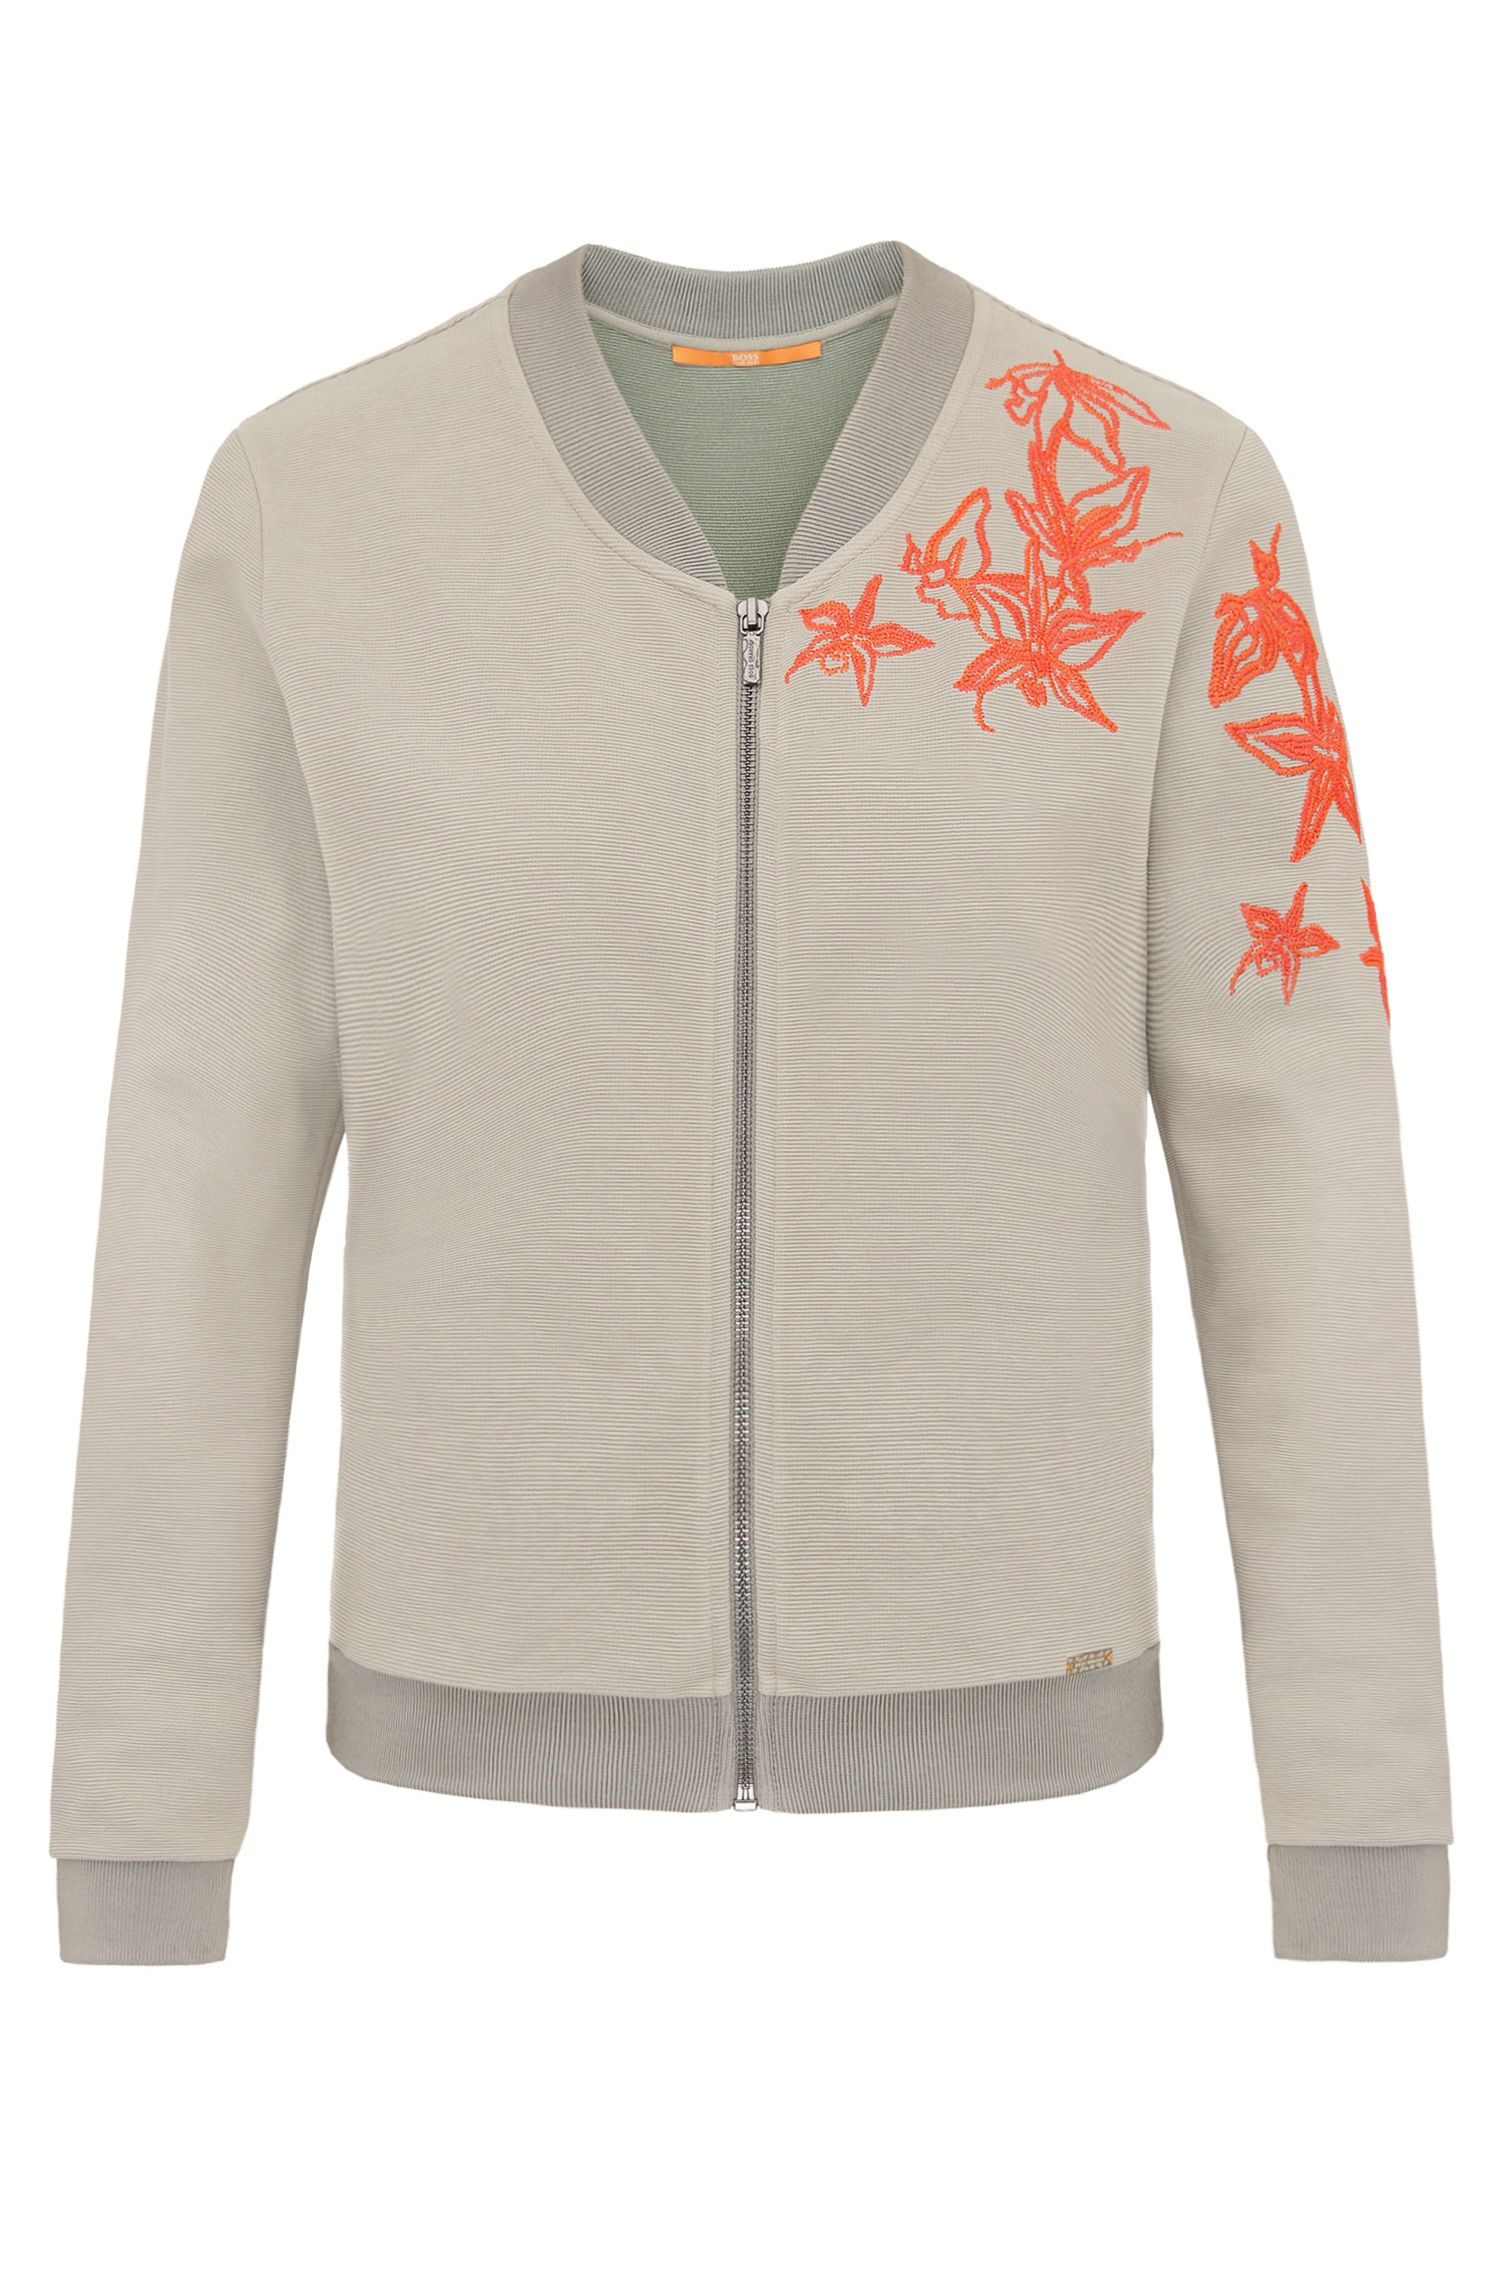 Embroidered regular-fit sweatshirt jacket in stretchy cotton blend: 'Tablues'